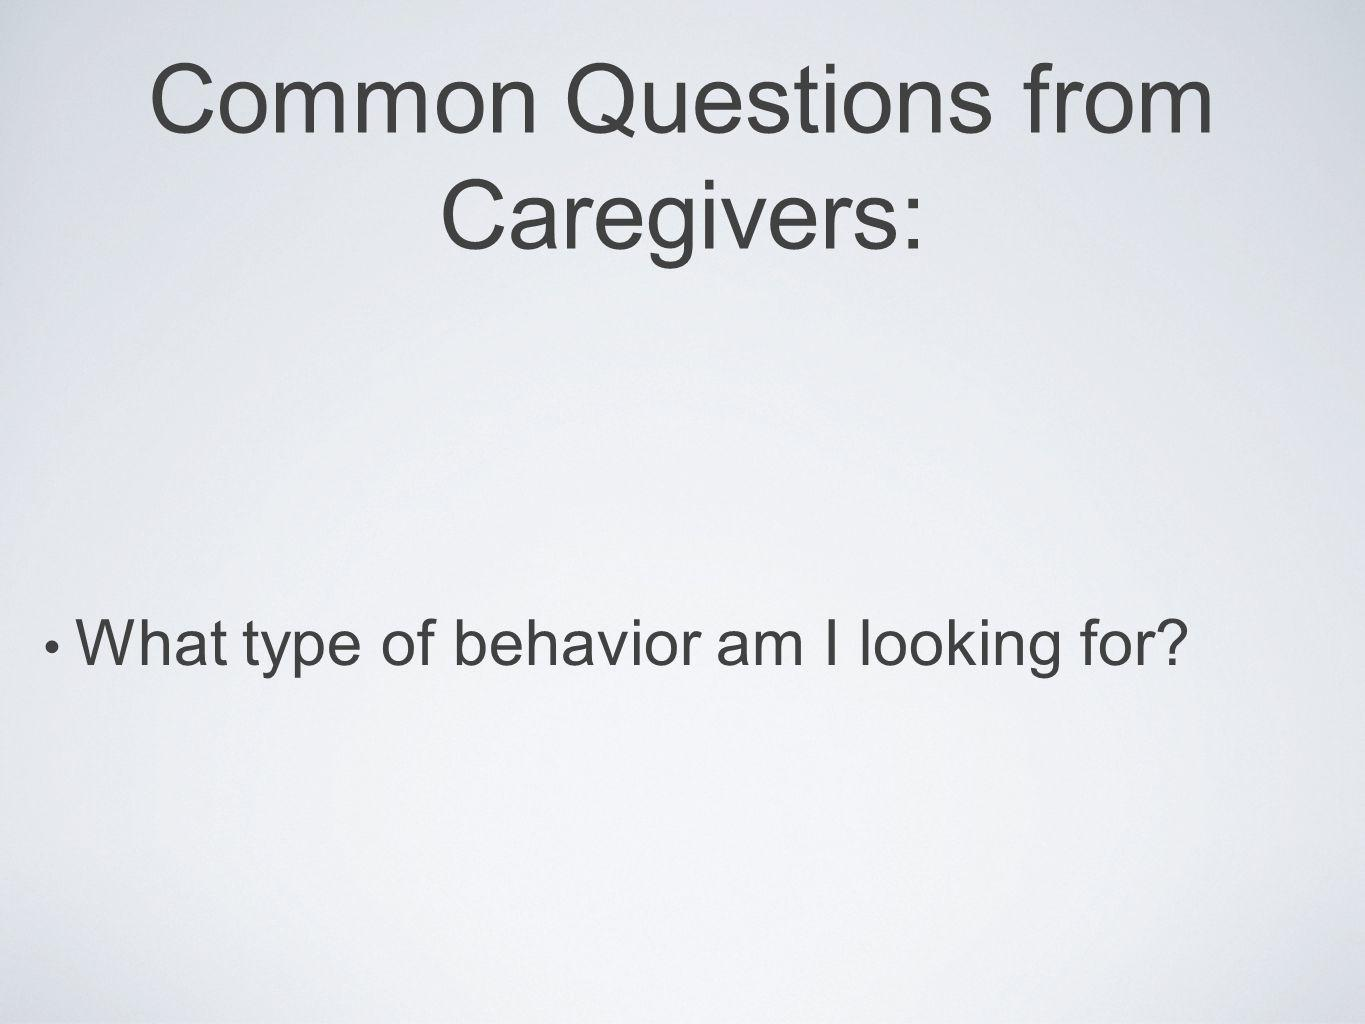 Common Questions from Caregivers: What type of behavior am I looking for?